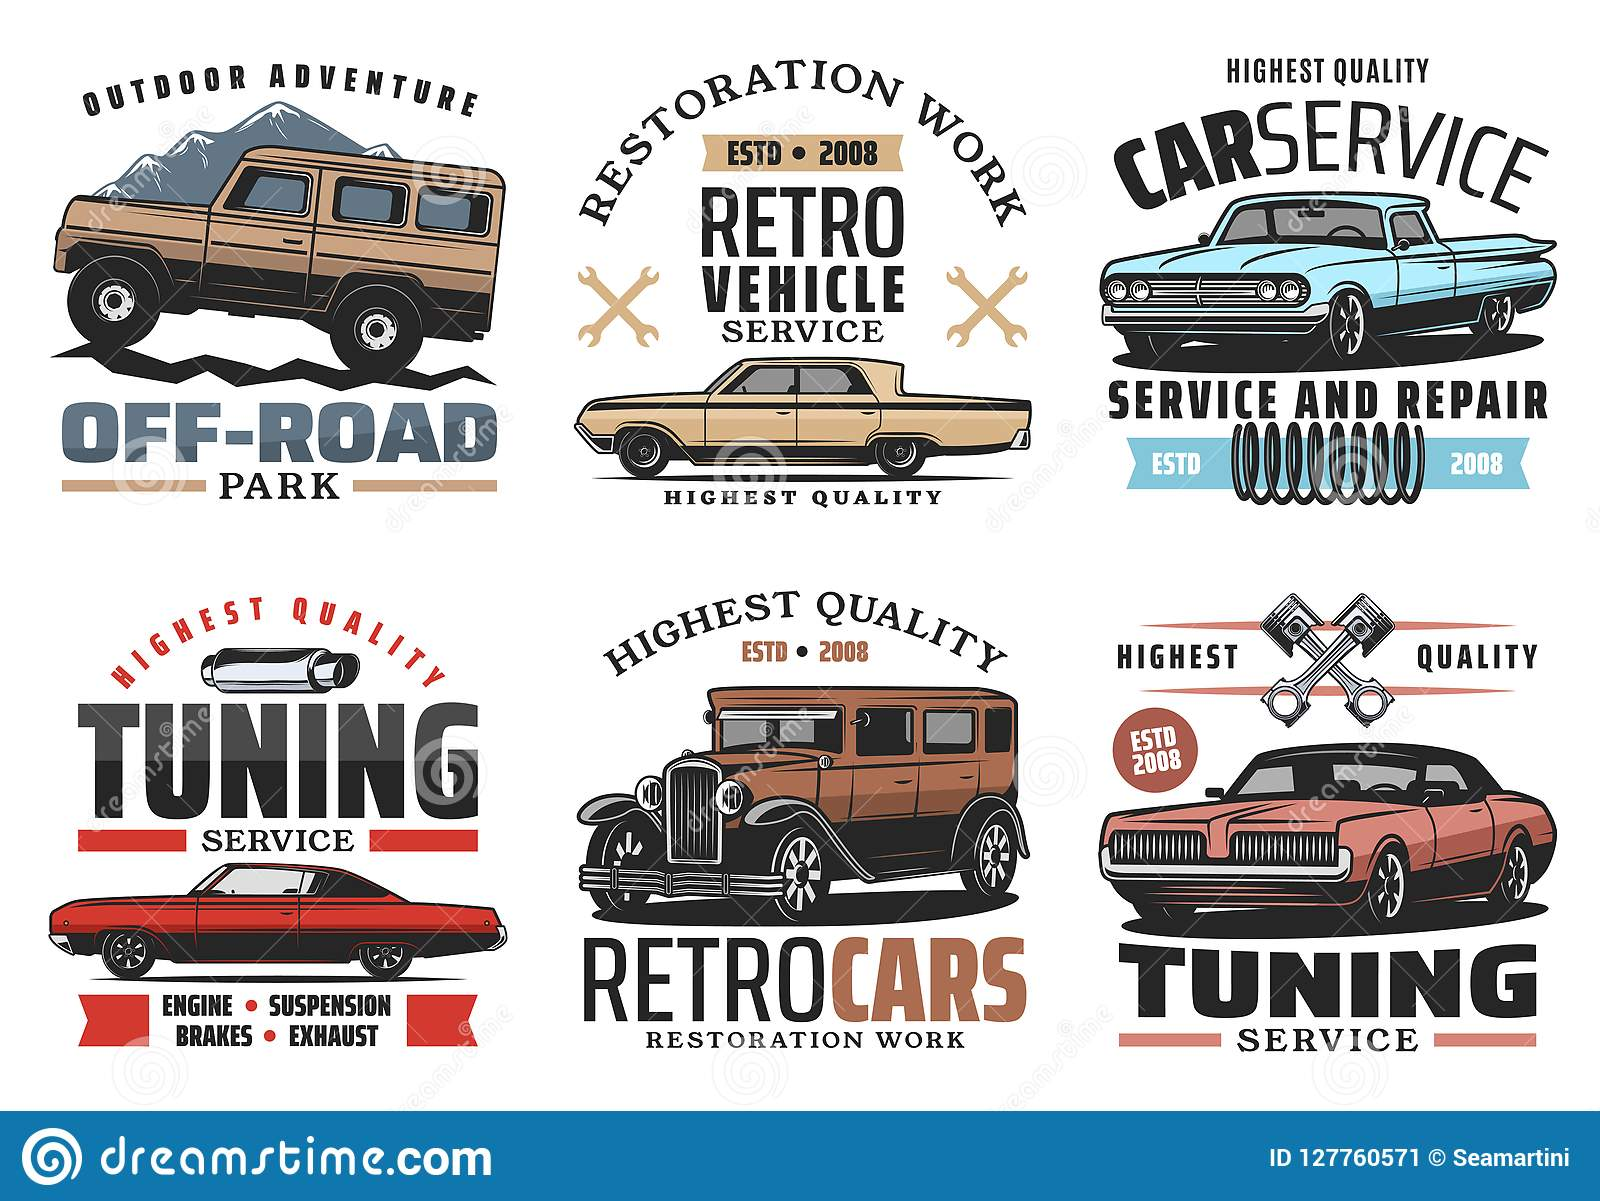 Remarkable Car Service And Tuning Icons With Retro Vehicles Stock Home Remodeling Inspirations Basidirectenergyitoicom